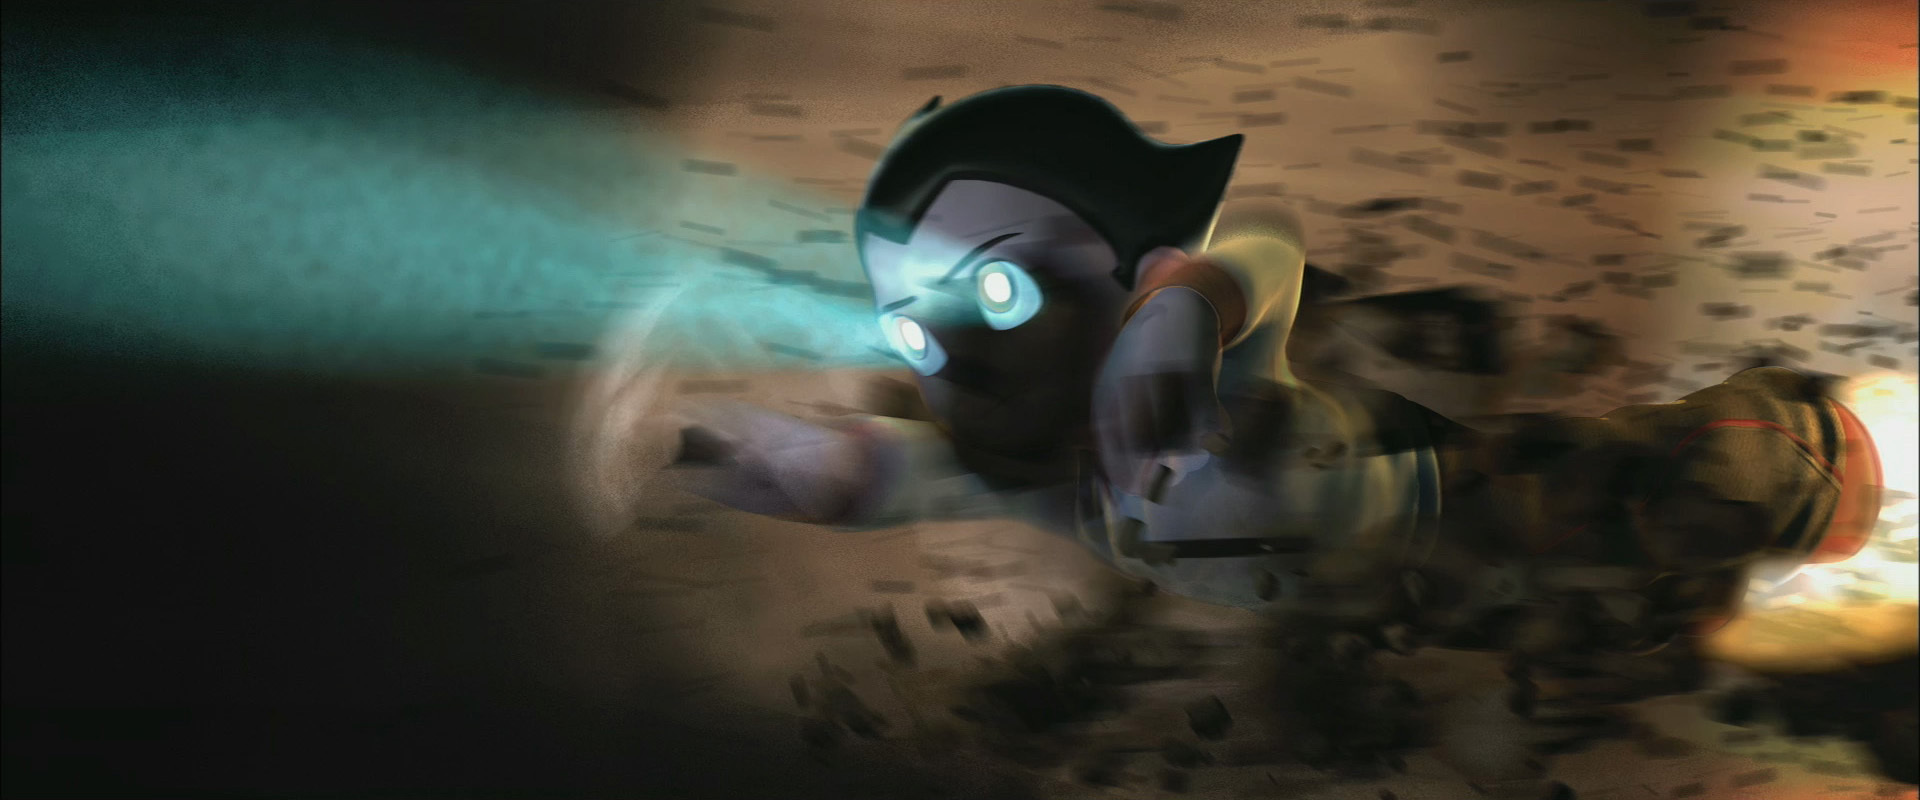 astro boy images astro boy trailer hd hd wallpaper and background